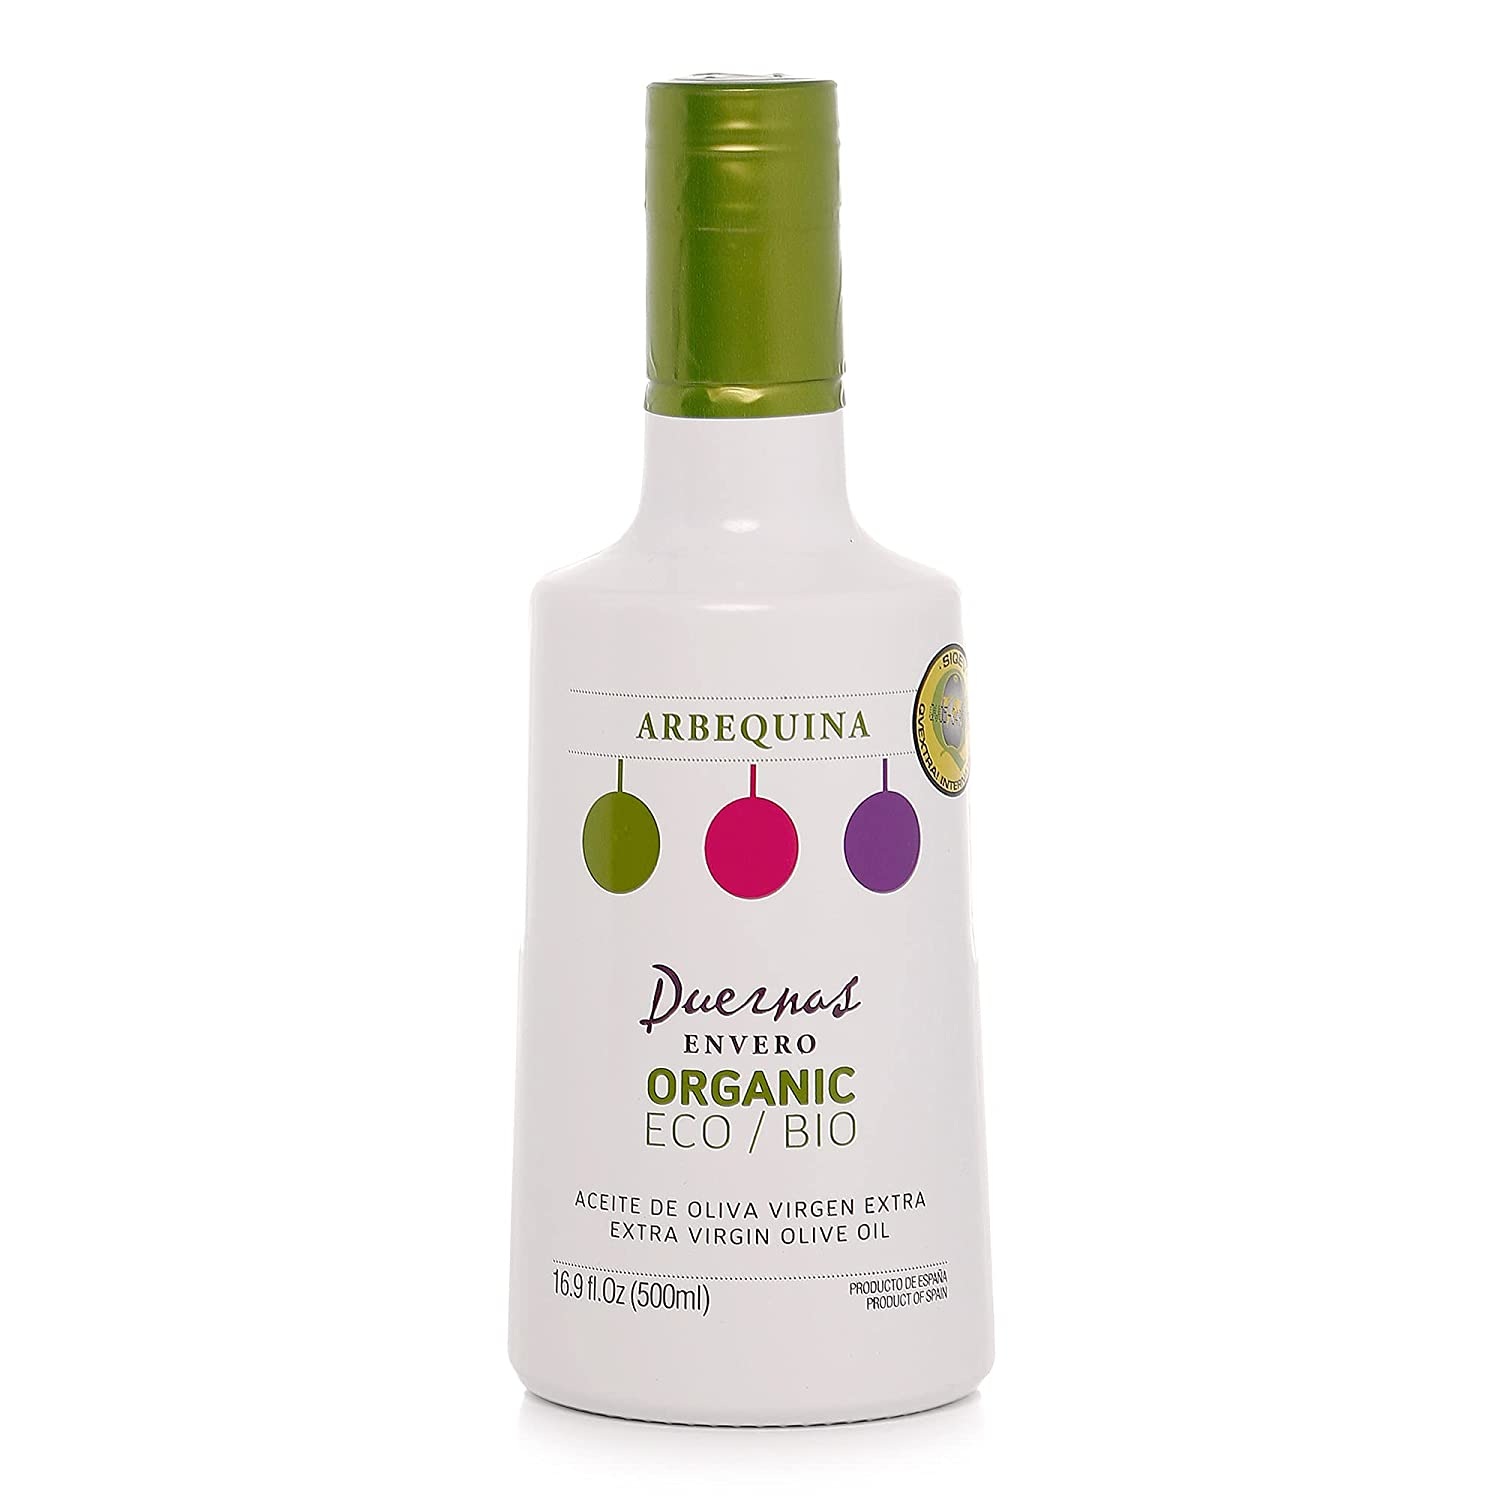 Healthy Food Must-Have, Pantry Food Staple, Ideal for Mediterranean Diet, Extra Virgin Olive Oil of Arbequina, 250ml/8.5 fl oz - Finca Duernas